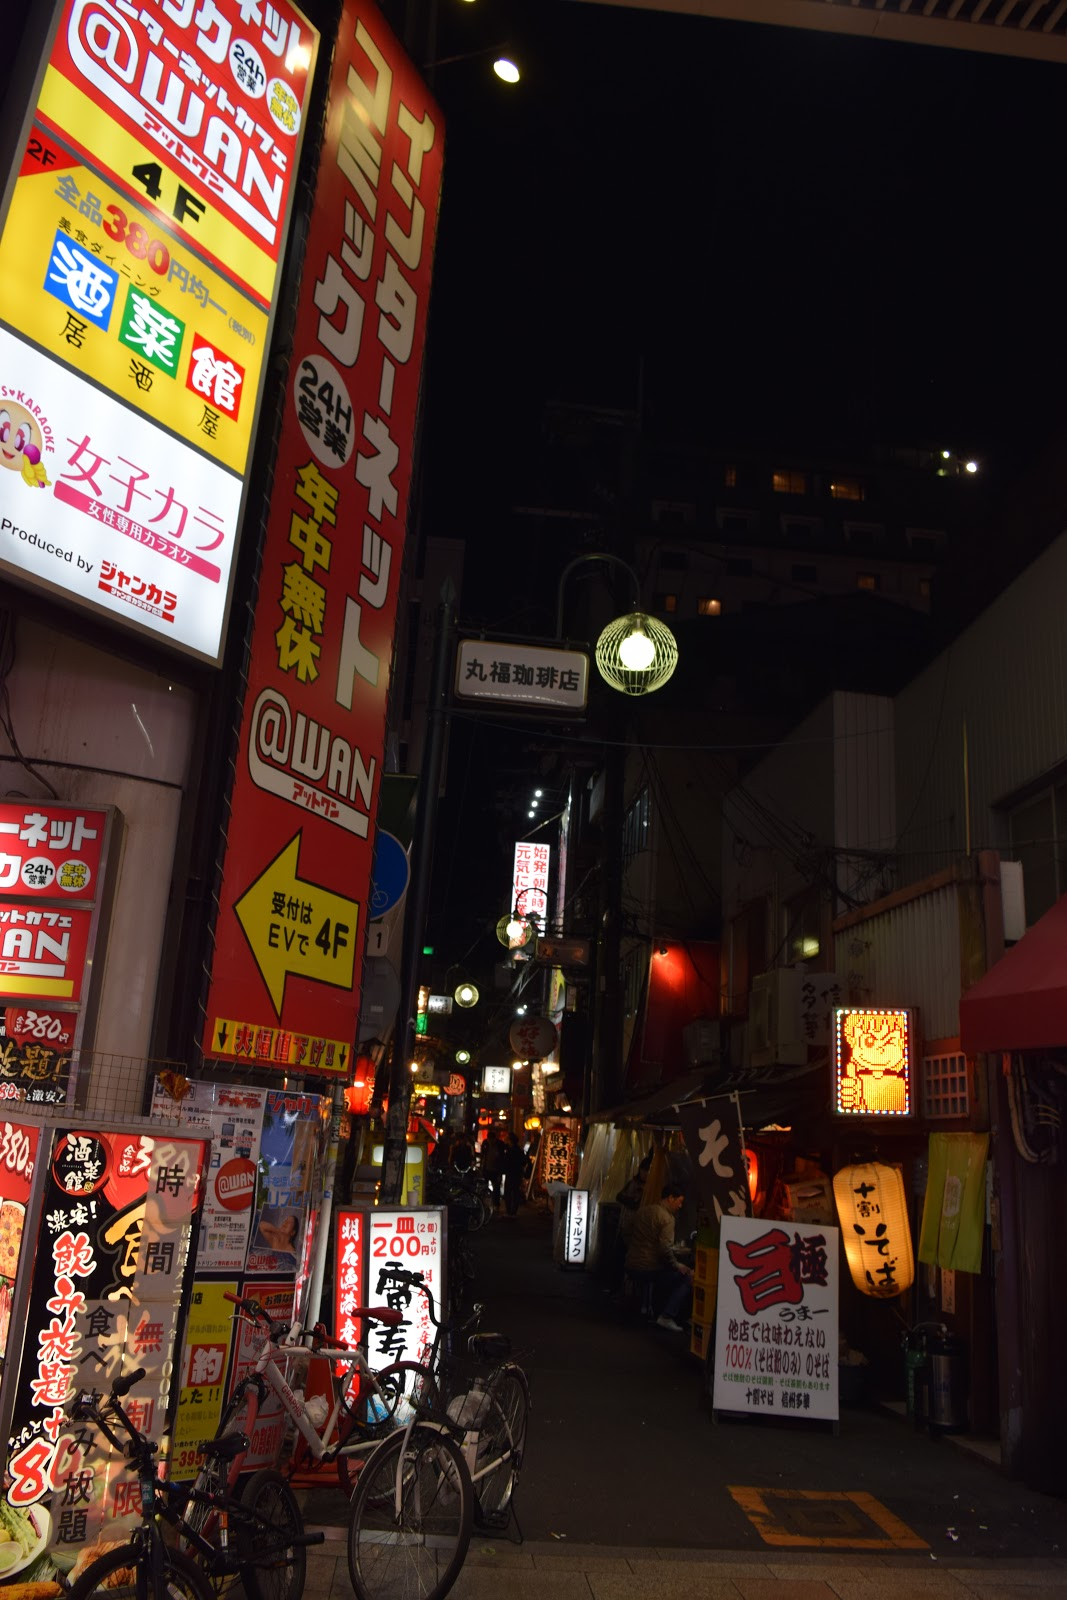 internet cafe sign and side street in namba, osaka at night